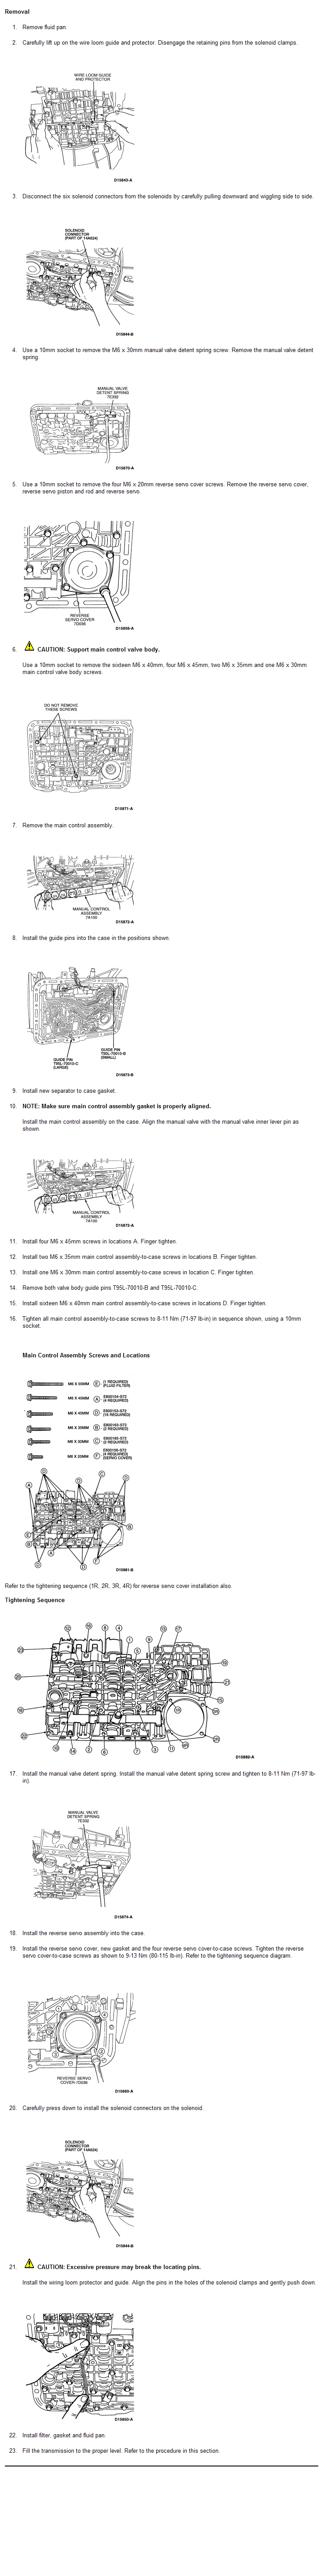 Ford Explorer Transmission Solenoid O2 Sensor Speed Issue 4r55e Wiring Diagram Graphic